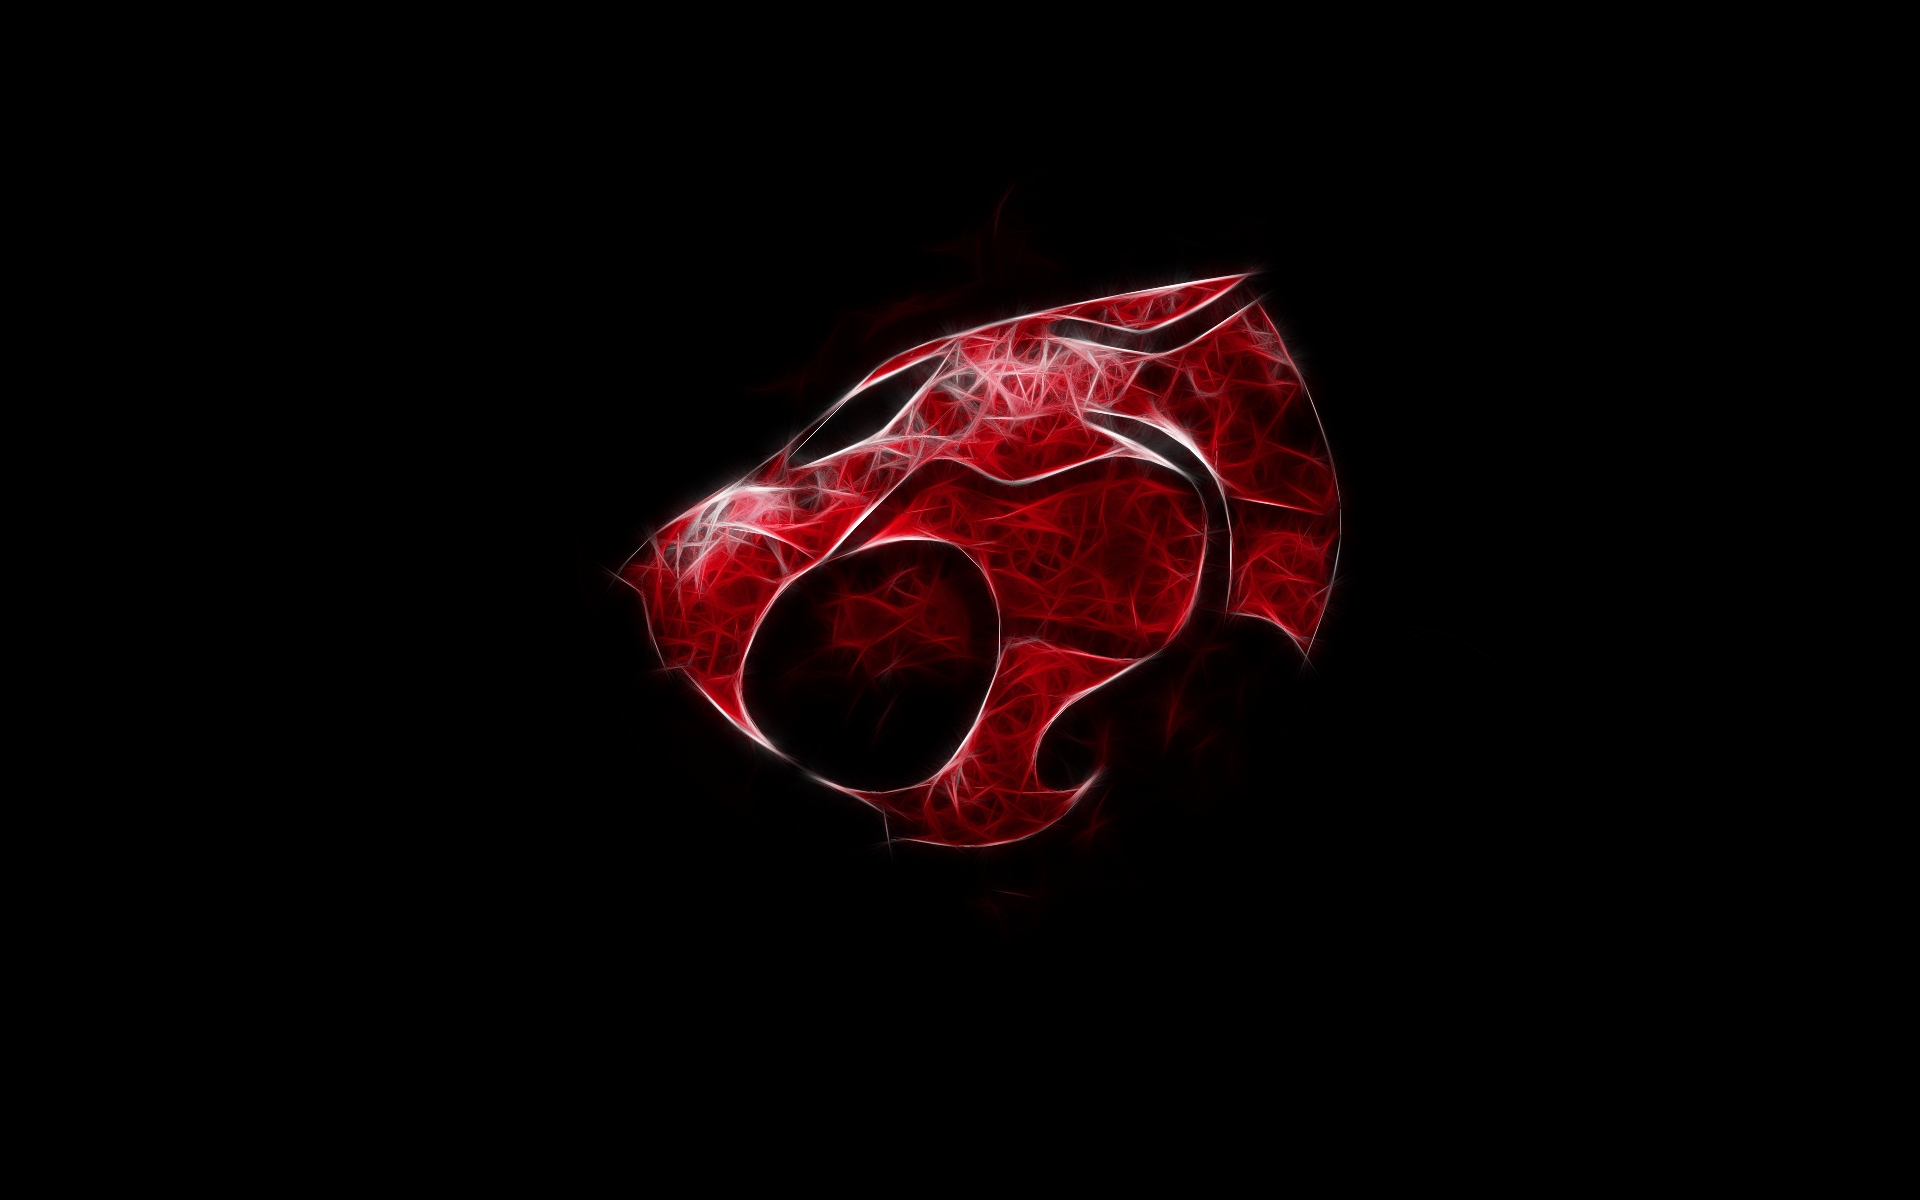 Download Red Wolf Wallpaper Gallery